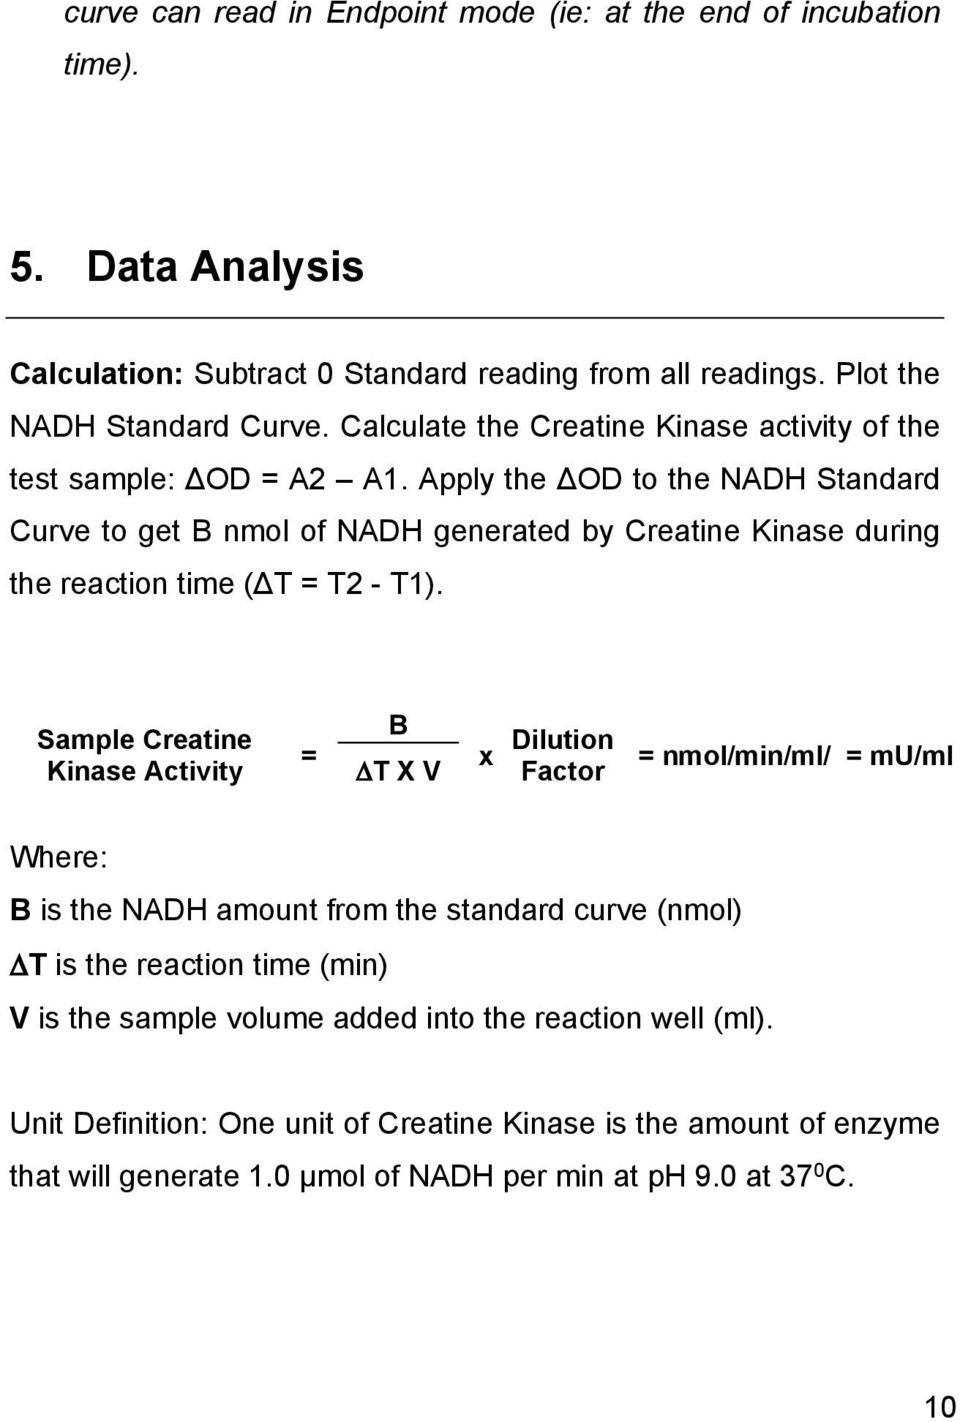 Apply the ΔOD to the NADH Standard Curve to get B nmol of NADH generated by Creatine Kinase during the reaction time (ΔT = T2 - T1).